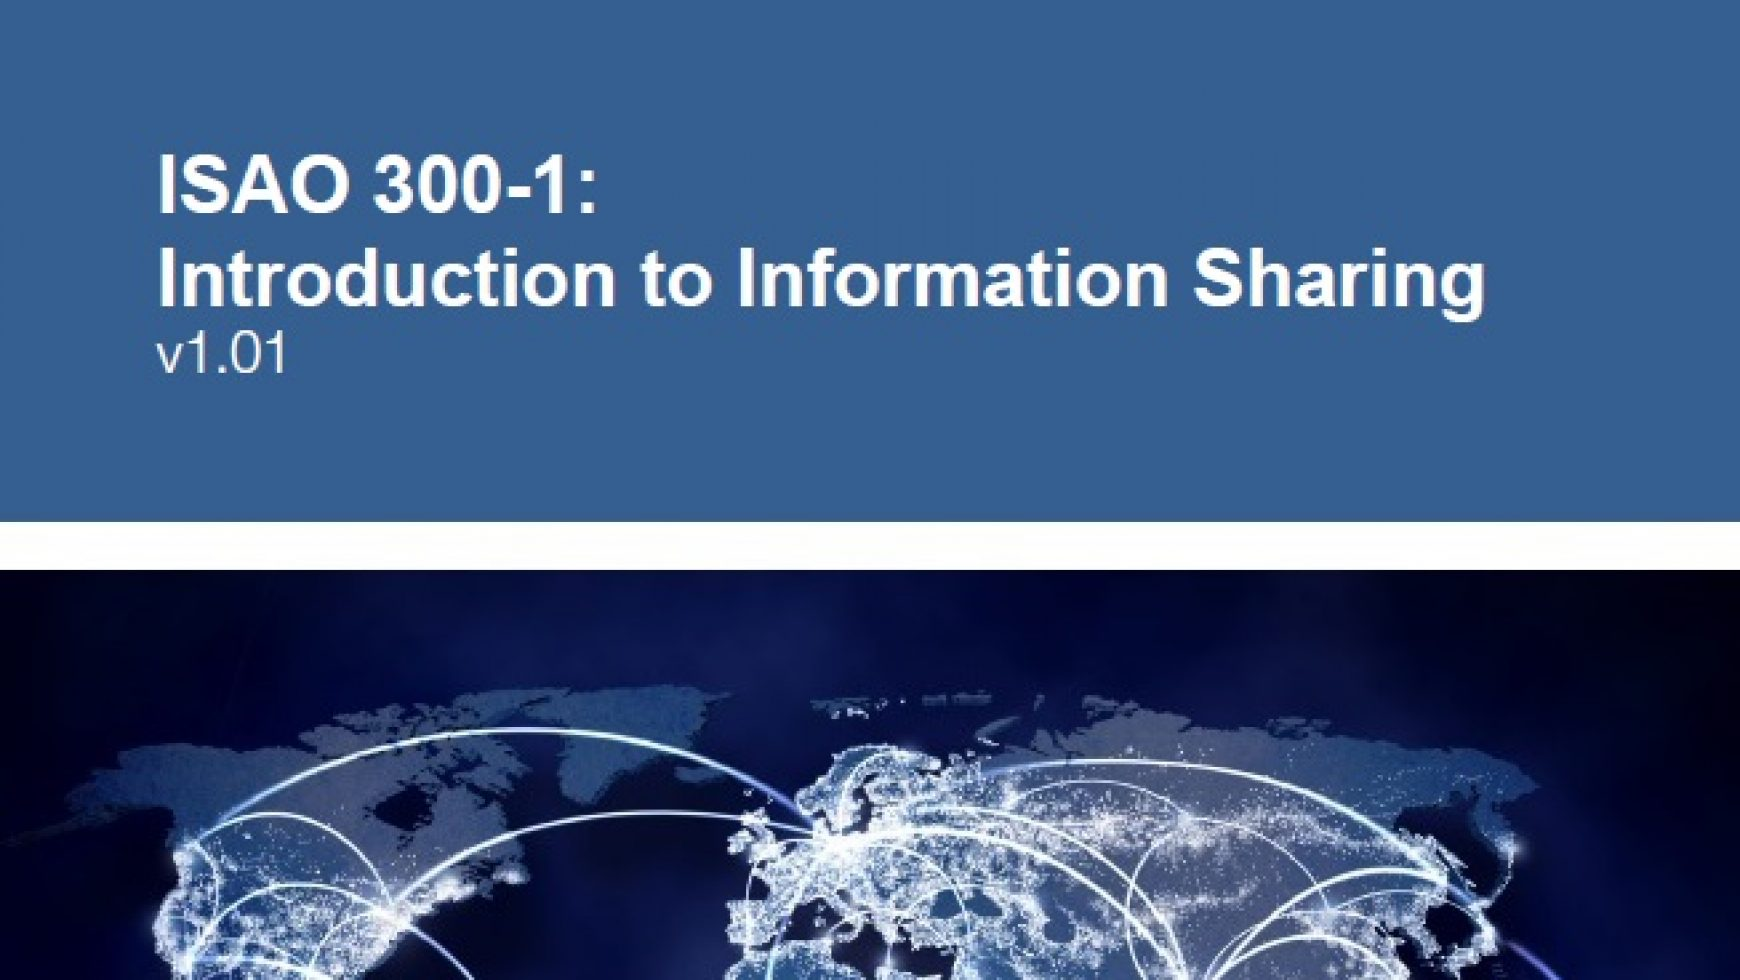 ISAO 300-1: Introduction to Information Sharing